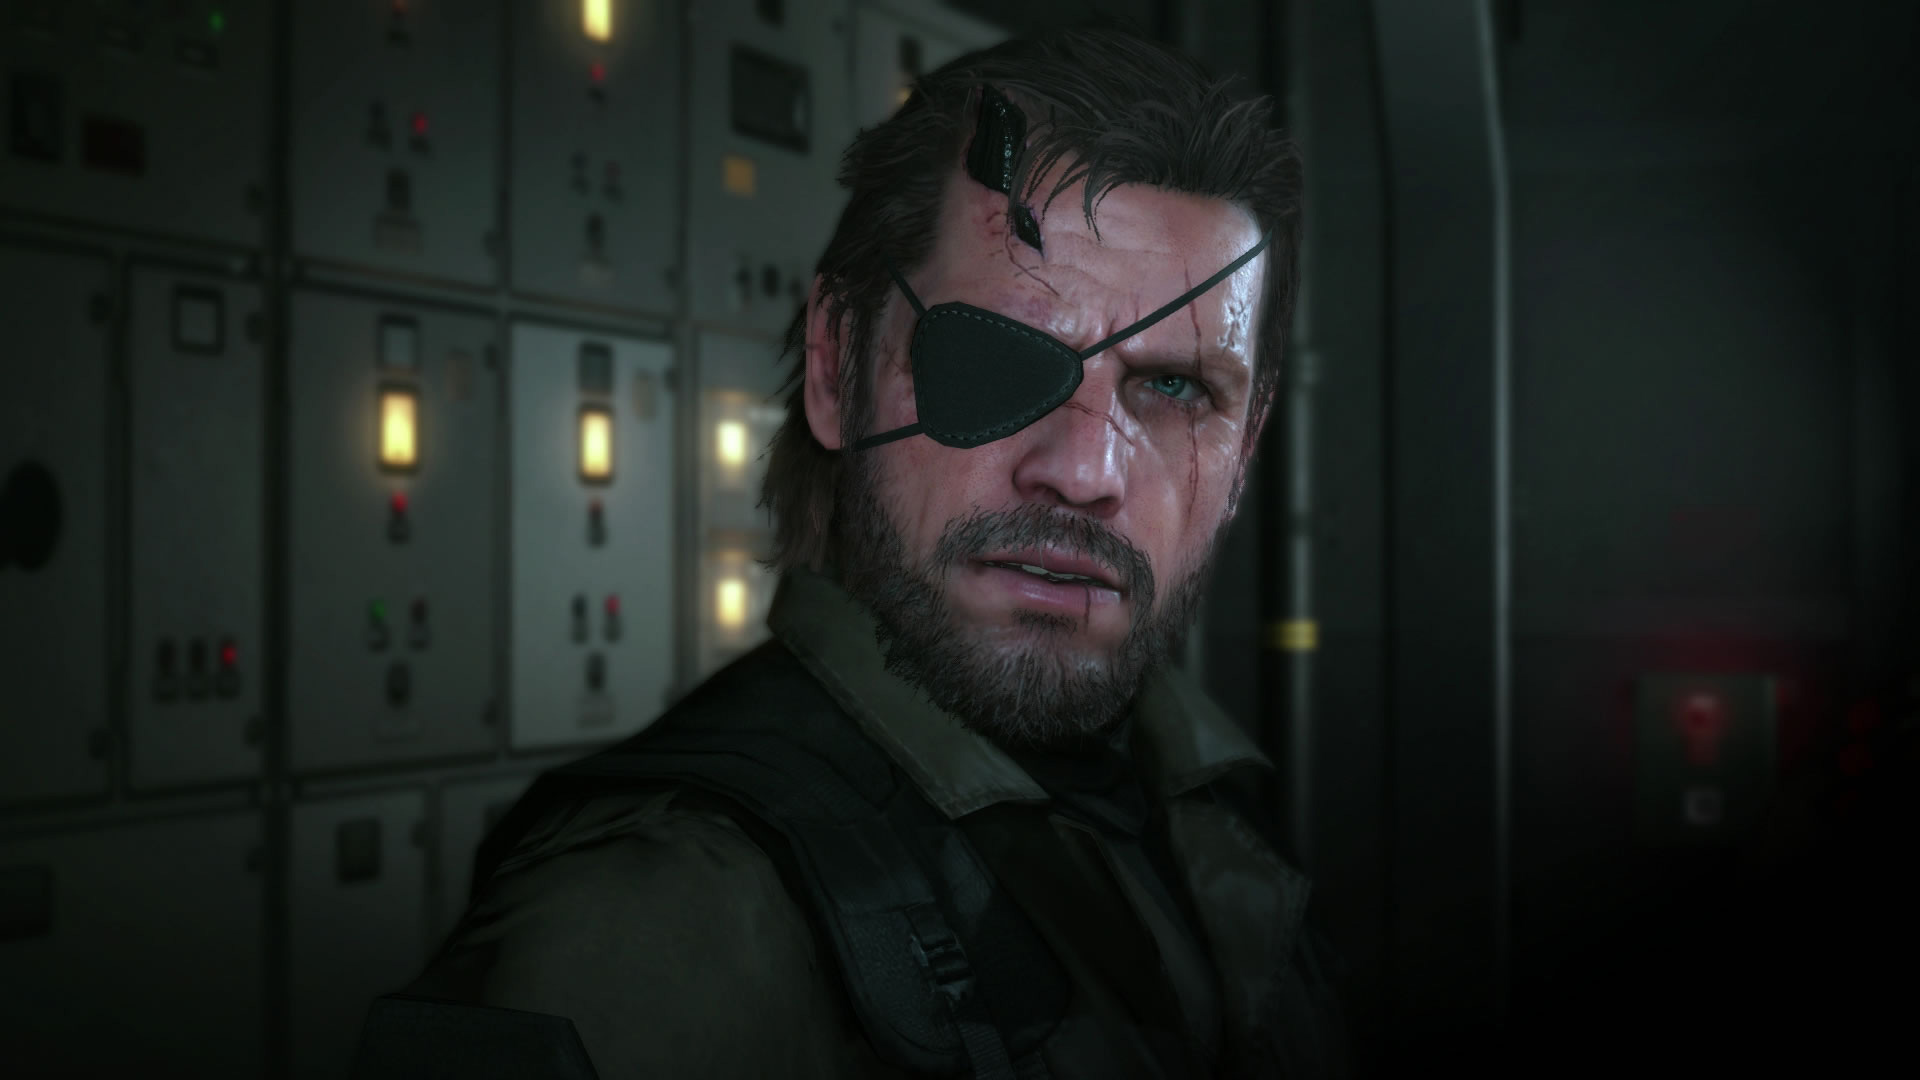 Metal-Gear-Solid-V-The-Phantom-Pain-E3-2015-Screen-Big-Boss